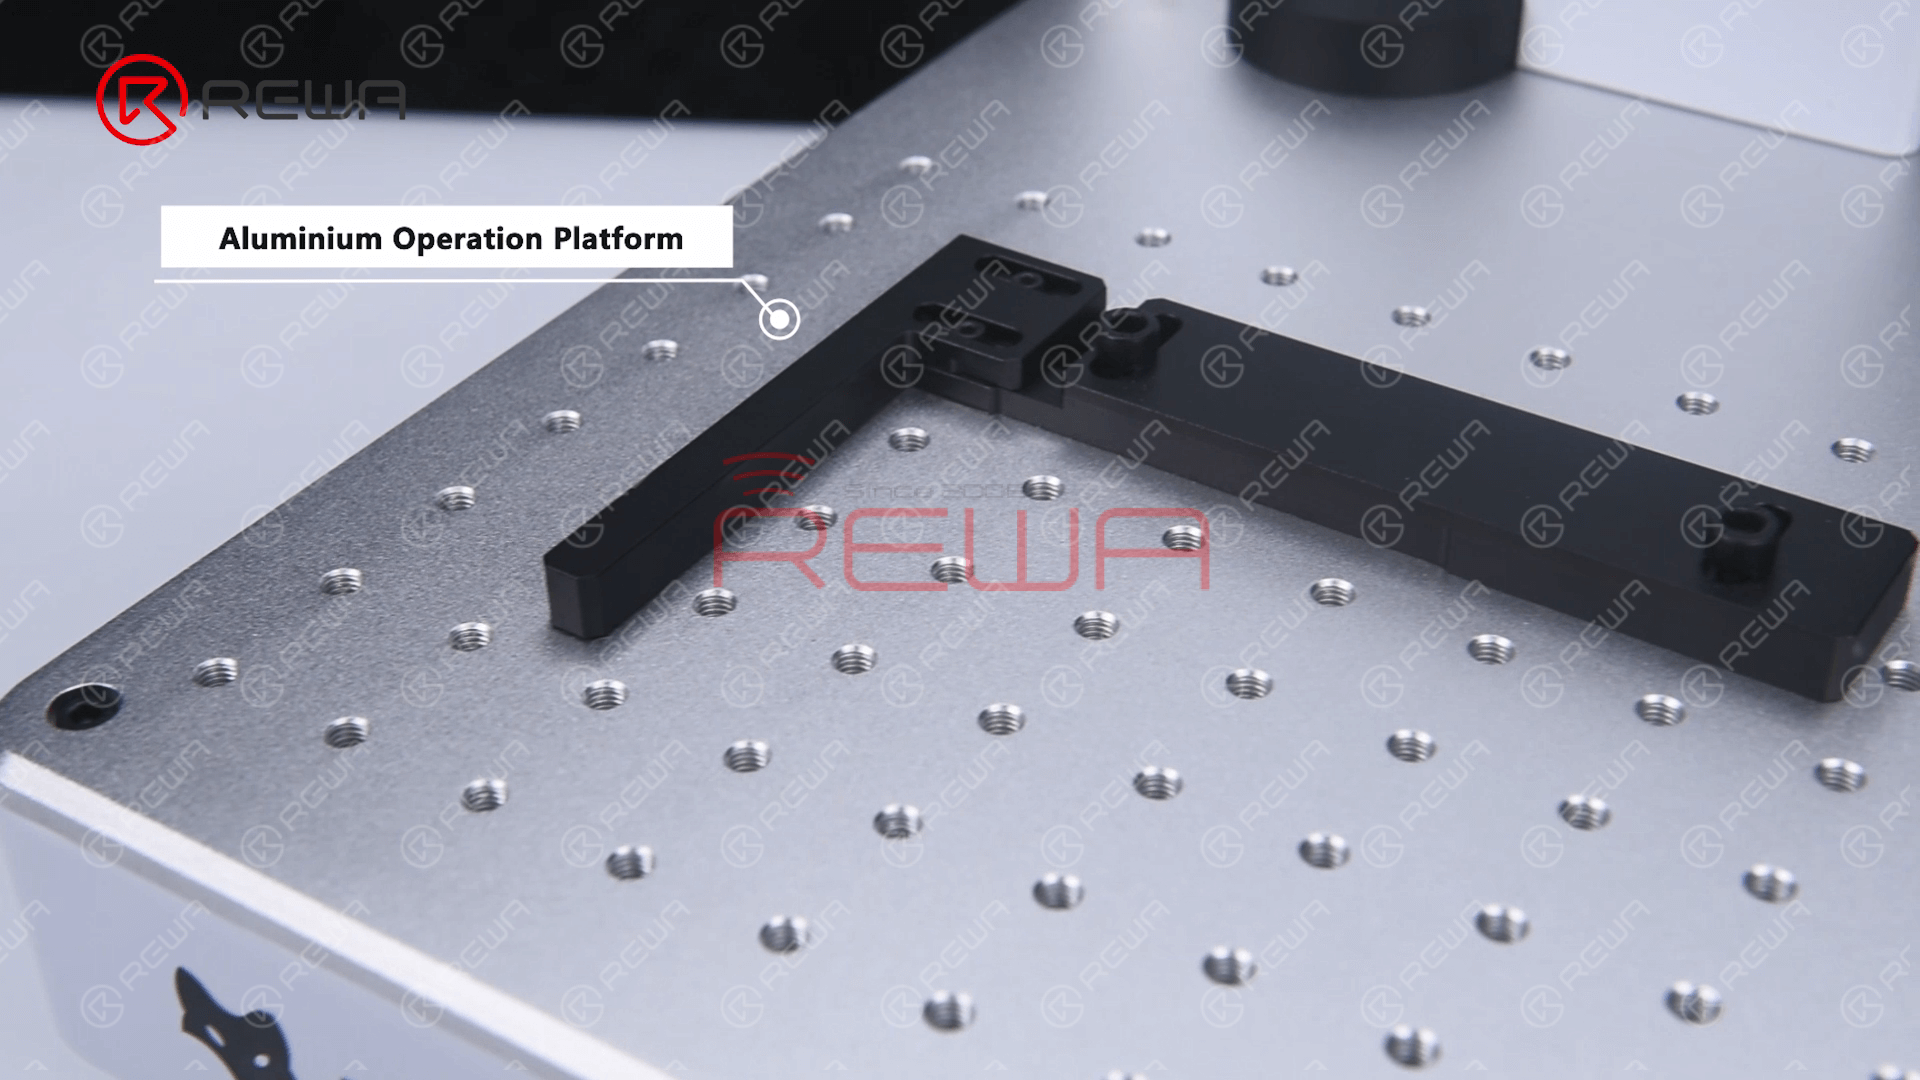 REFOX Upgraded Laser Marking Machine uses an all-aluminum operation platform which is precisely positioned, flexible and adjustable.